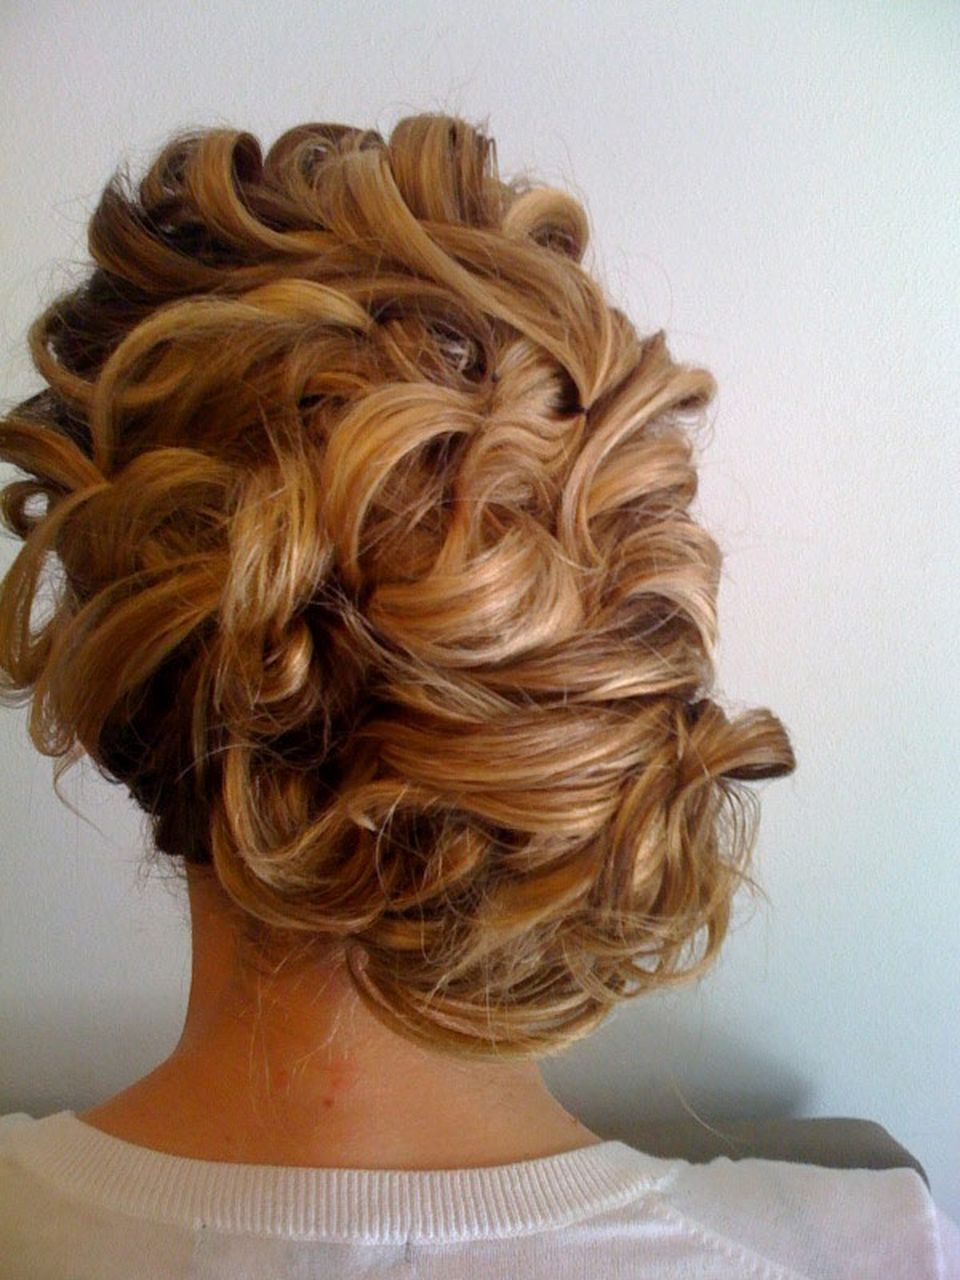 Curly romantic updo this style is perhaps one of the most popular